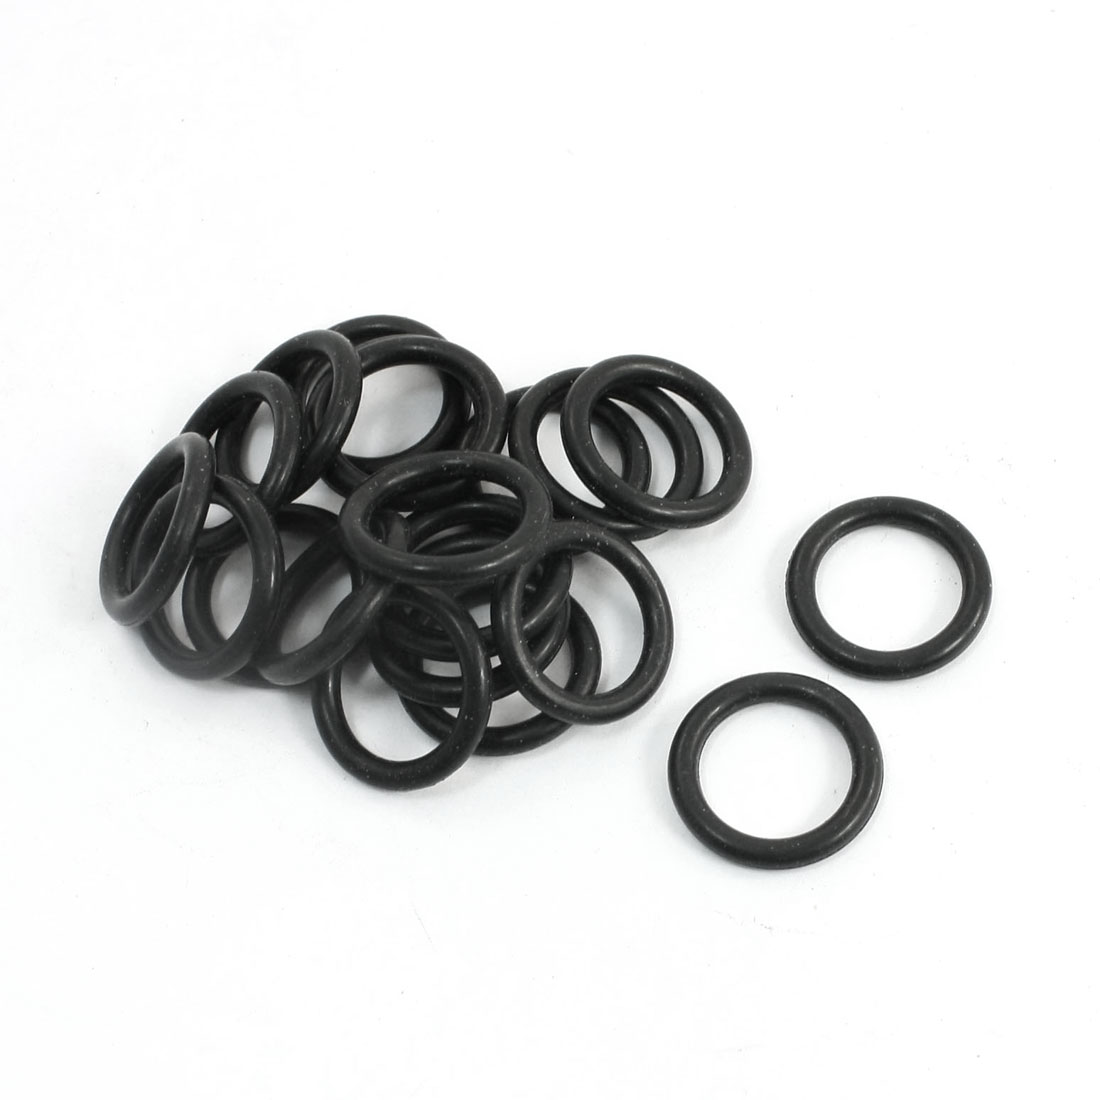 20 Pcs Replacement Flexible Rubber Oil Seal Filter O Rings 18.5x2.65mm